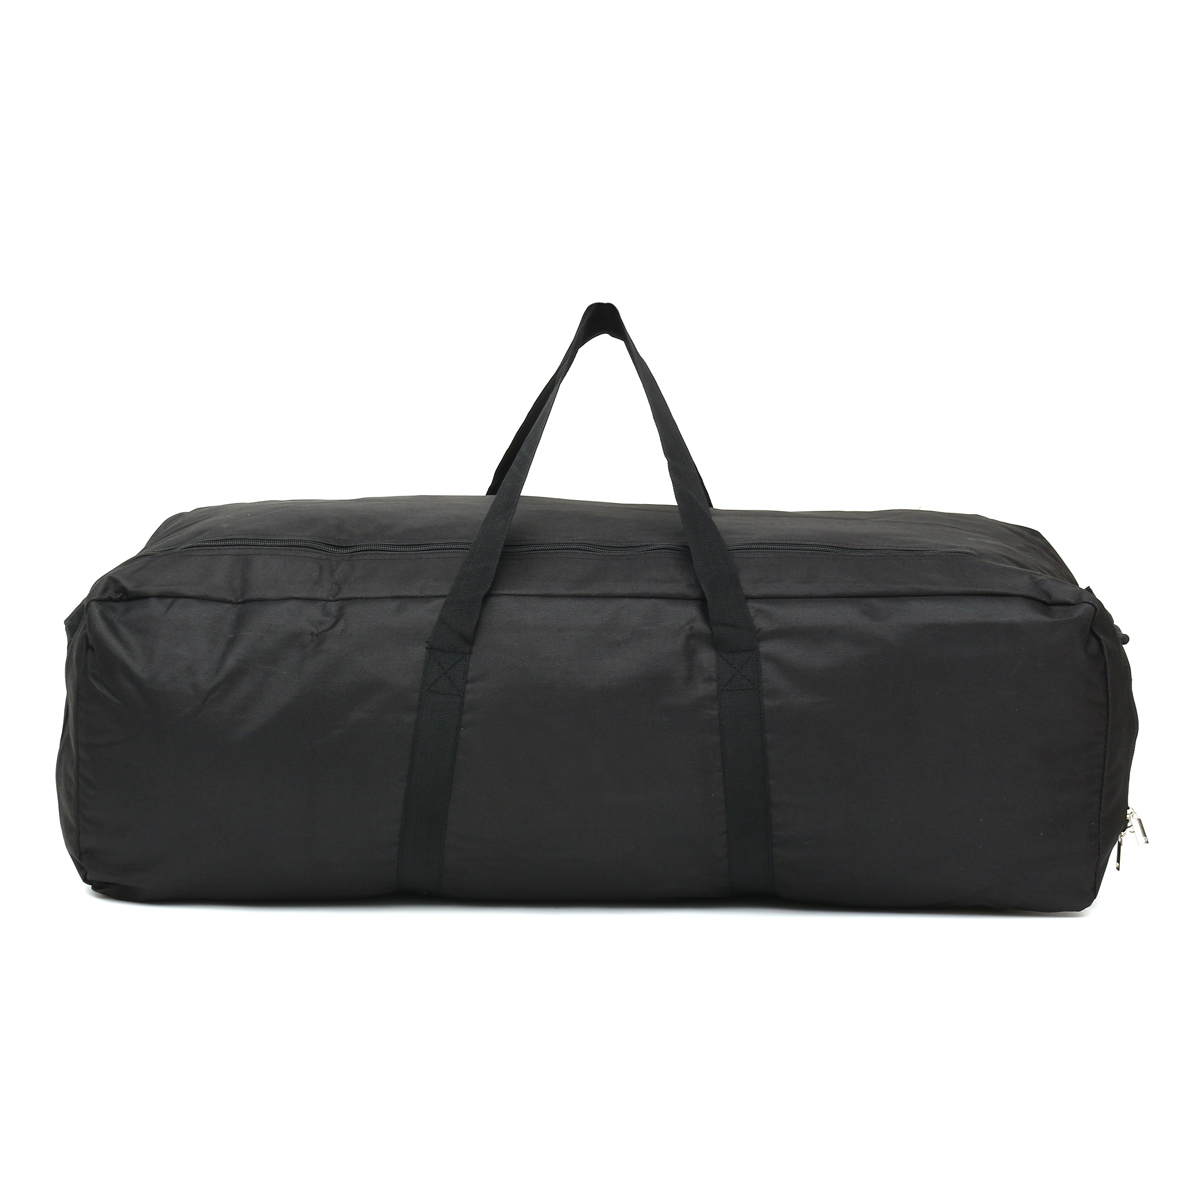 Outdoor Camping Travel Large Duffle Bags Waterproof Oxford Foldable Luggage Handbag Men Backpack Storage Pouch Tote 97/130/180L